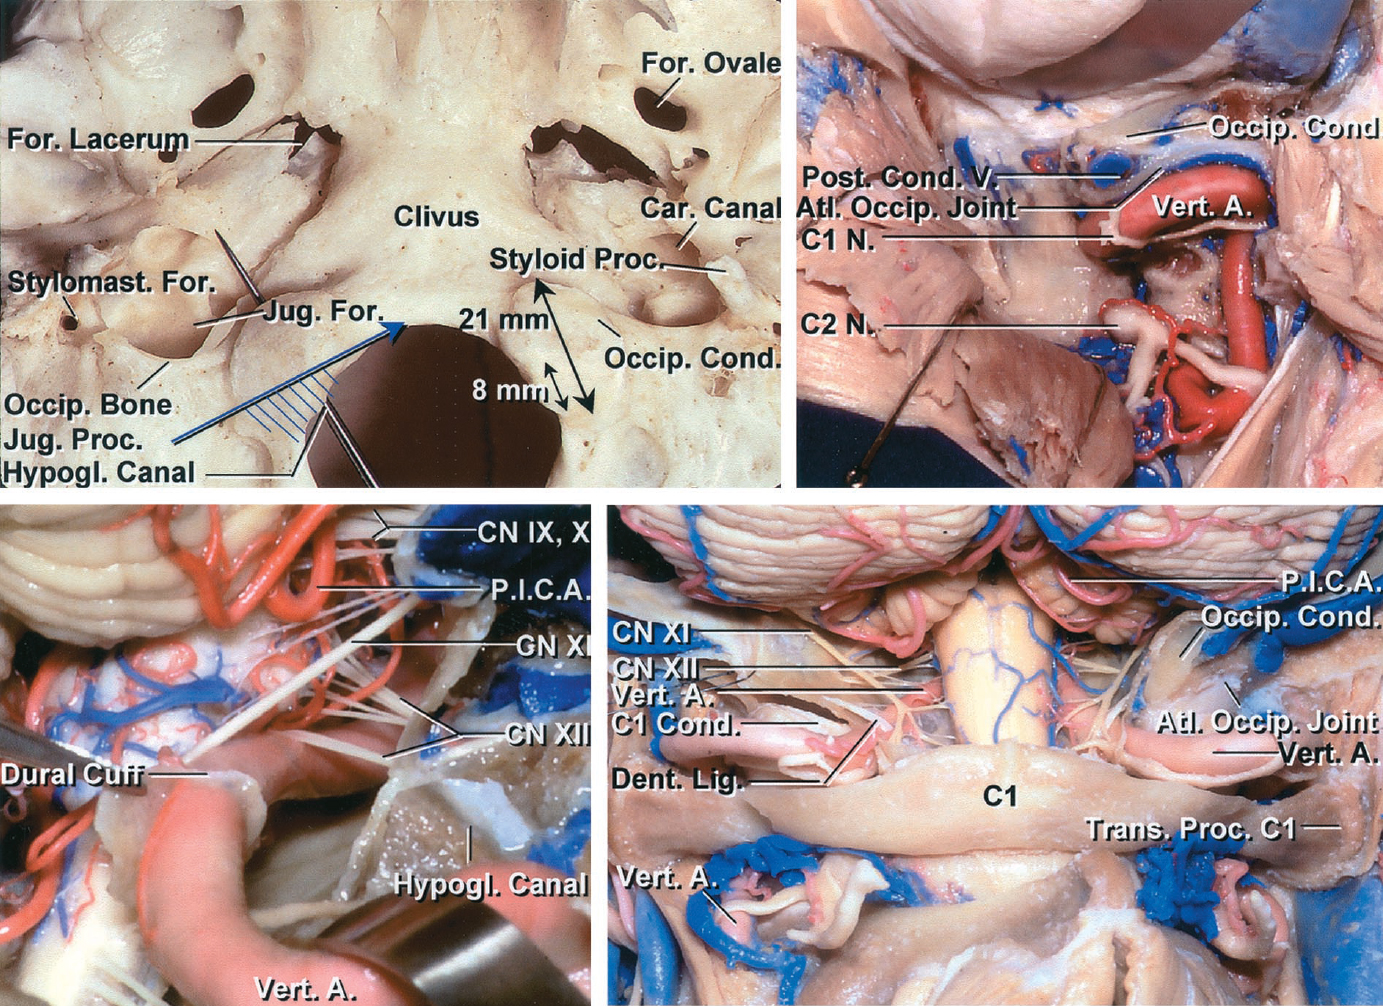 Figure 3: The  hashed area  in the left upper image defines the maximal required extent of condylectomy for purely ventral craniocervical lesions. Early identification of the vertebral artery on the lateral arch of C1 (sulcus arteriosus) is the first step in this approach.  Note the location of the posterior condylar vein as a landmark to assist with the extent of condylectomy (right upper image).  The vein is along the lateral aspect of the condyle. Once I reach the vein, I drill only the outer shell of the condyle. The lower images demonstrate other relevant anatomy of the region including cranial nerve XII (images courtesy of AL Rhoton, Jr).